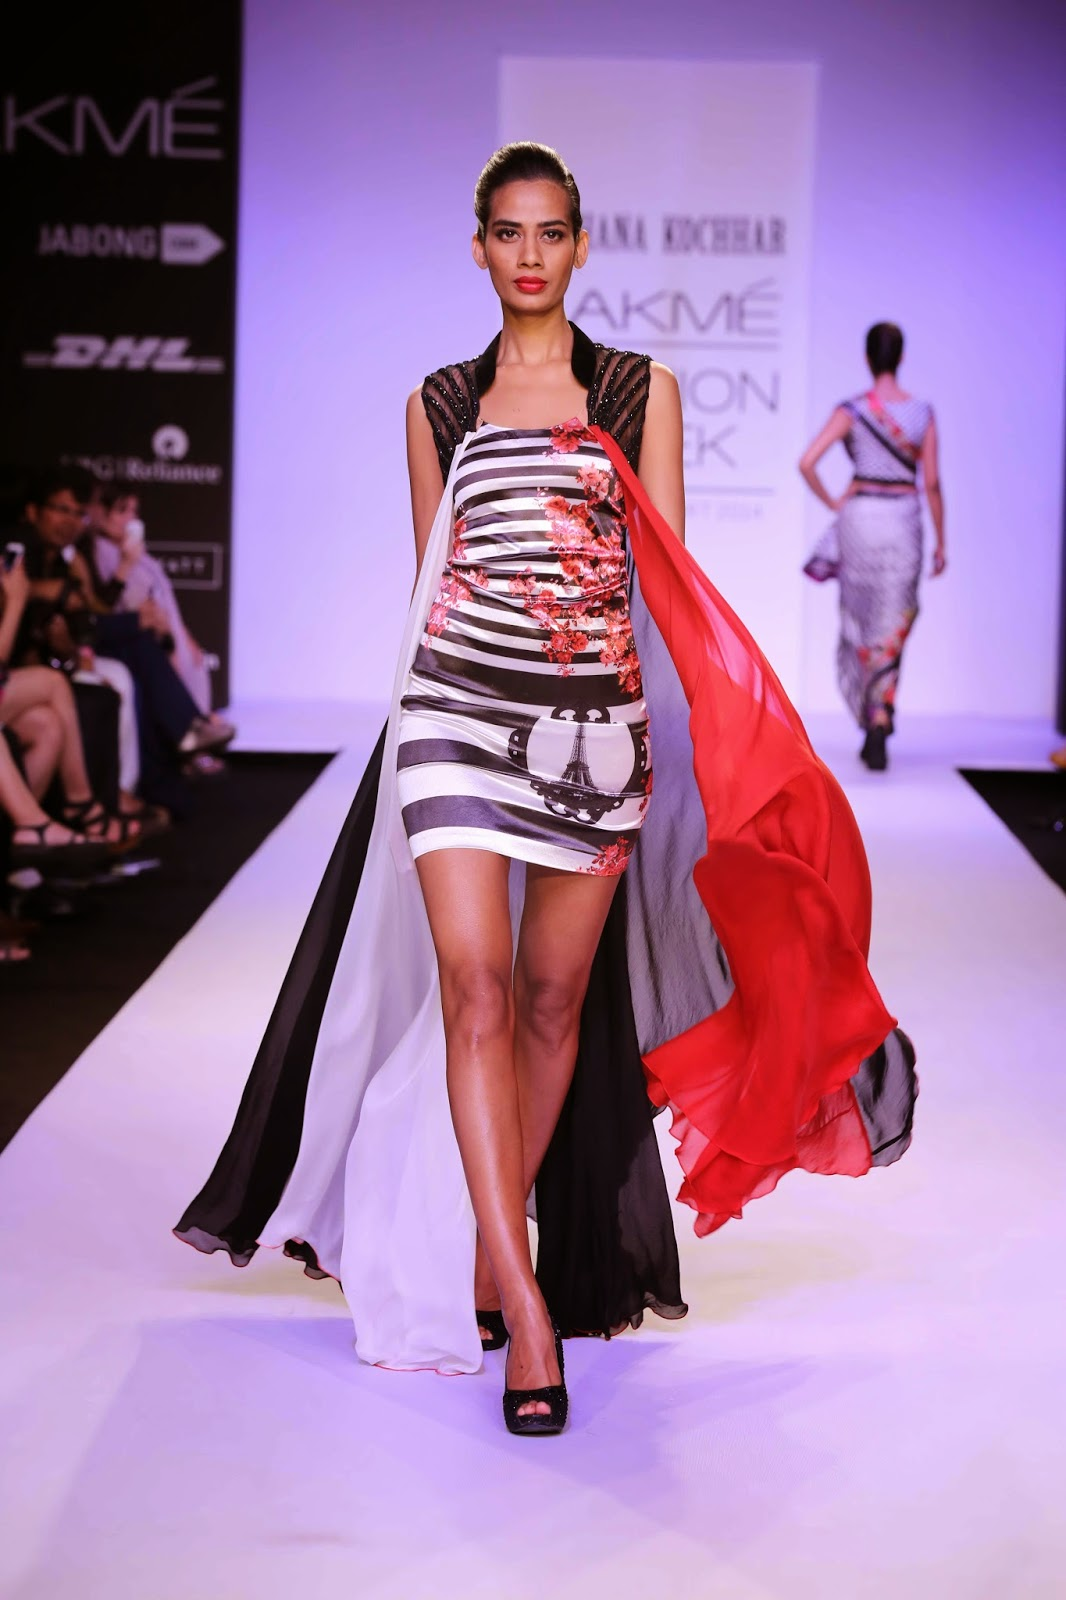 Playing with the stripes in horizontal and vertical forms, Archana had some interesting entries like small gilets over white shirts worn with short frothy skirts.